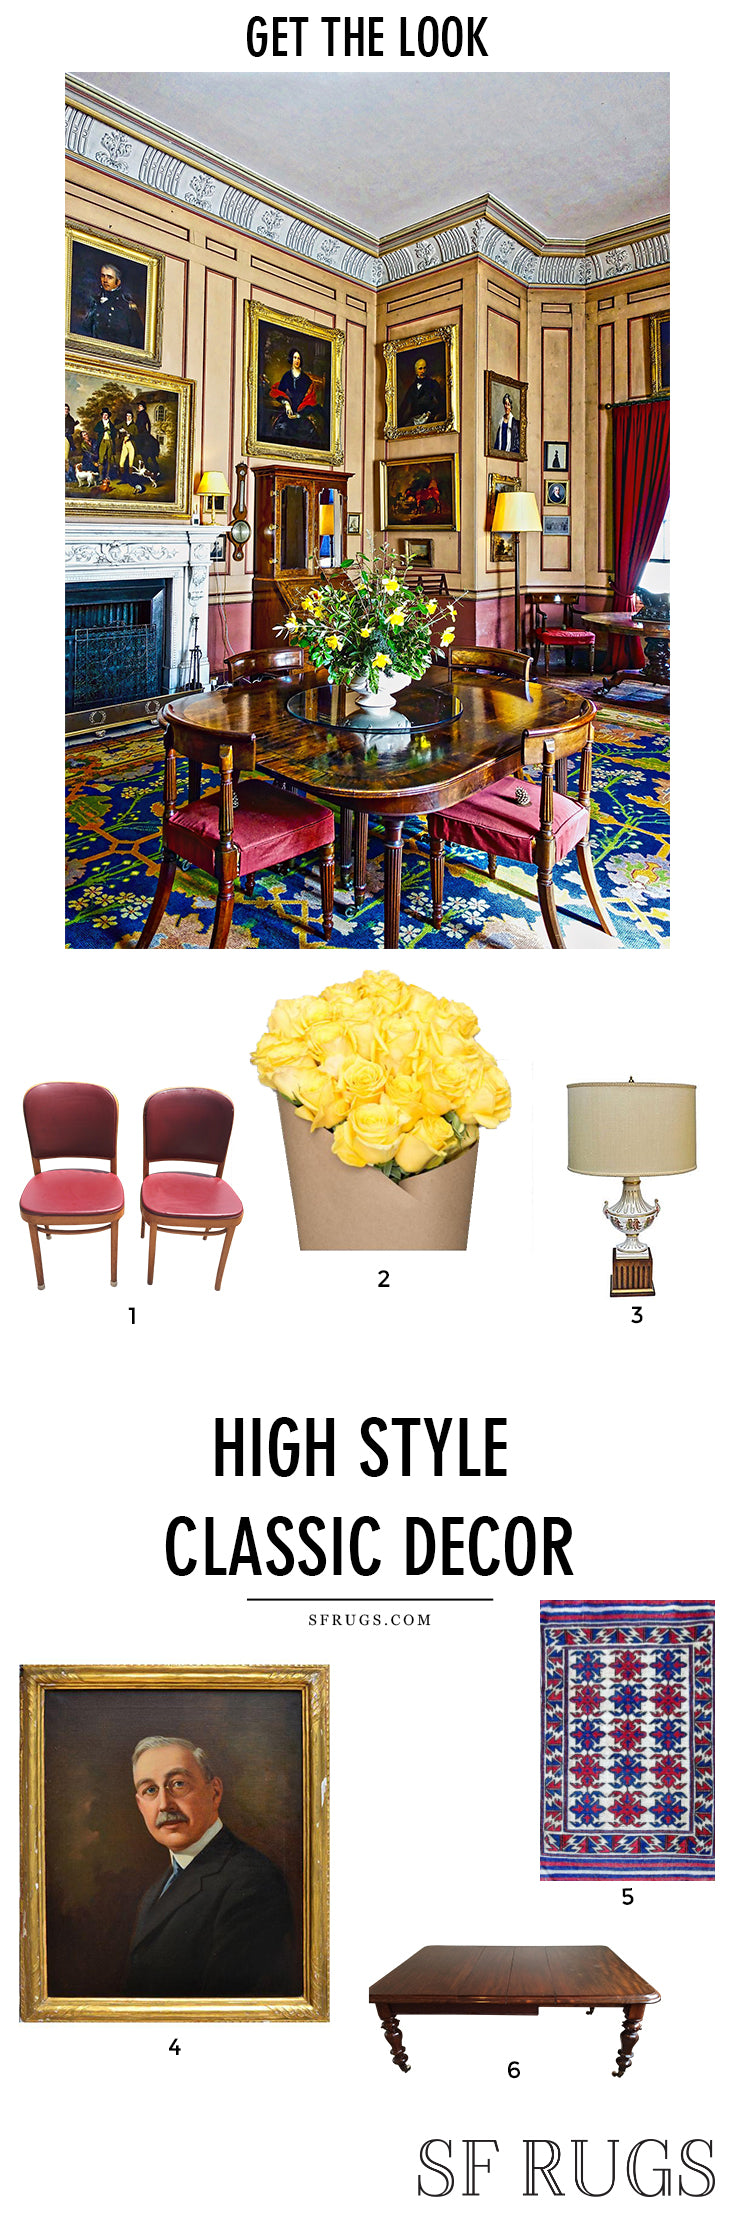 Get the look with vintage decor, vintage rugs, high style classic traditional home decor Traditional home decor, classic home decor, luxury home decor, luxury interior, luxury interior design, luxury living room, luxury furniture @sfrugs sfrugs.com